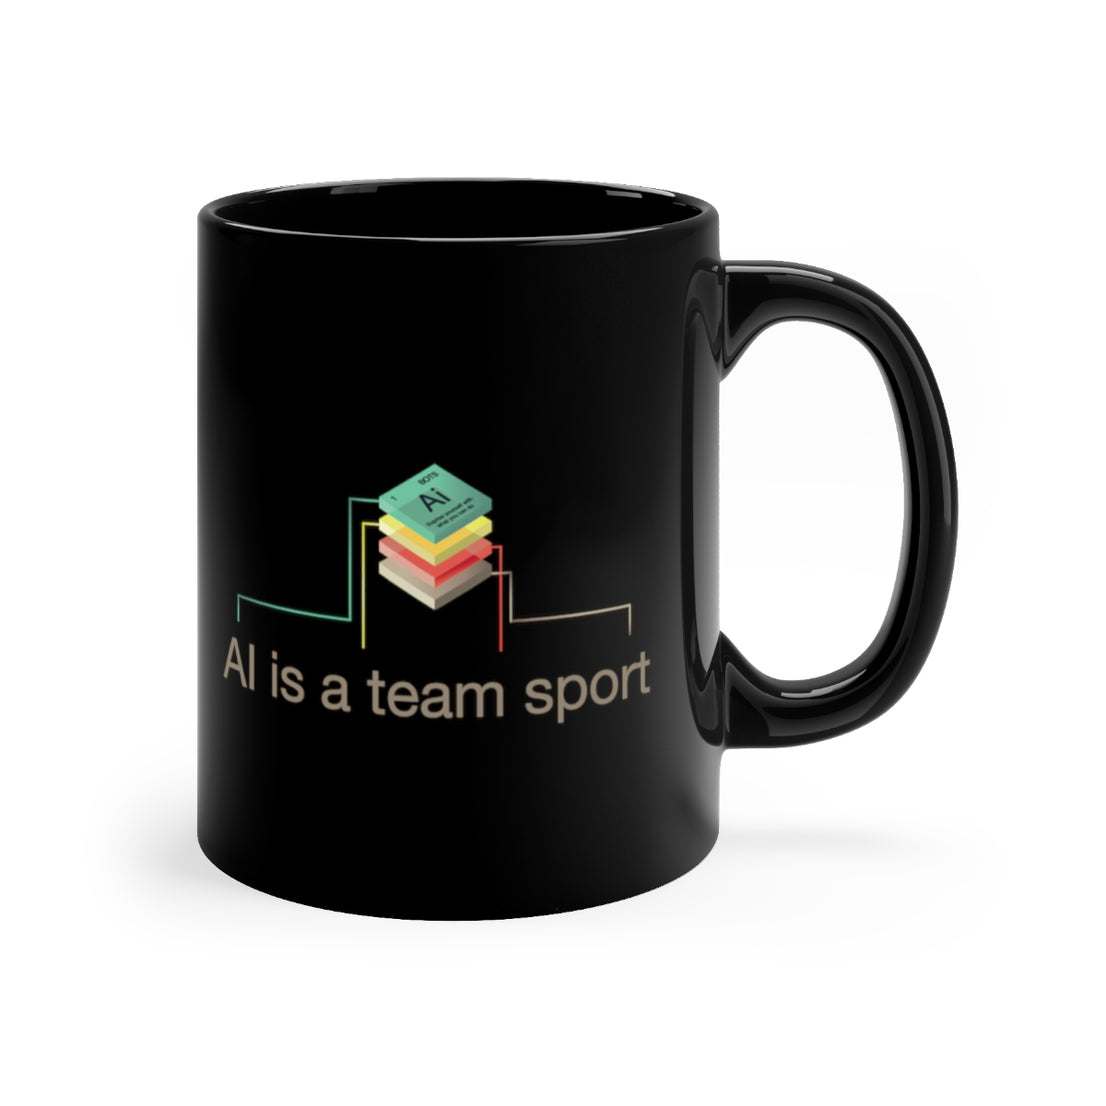 AI is a team sport 11oz mug